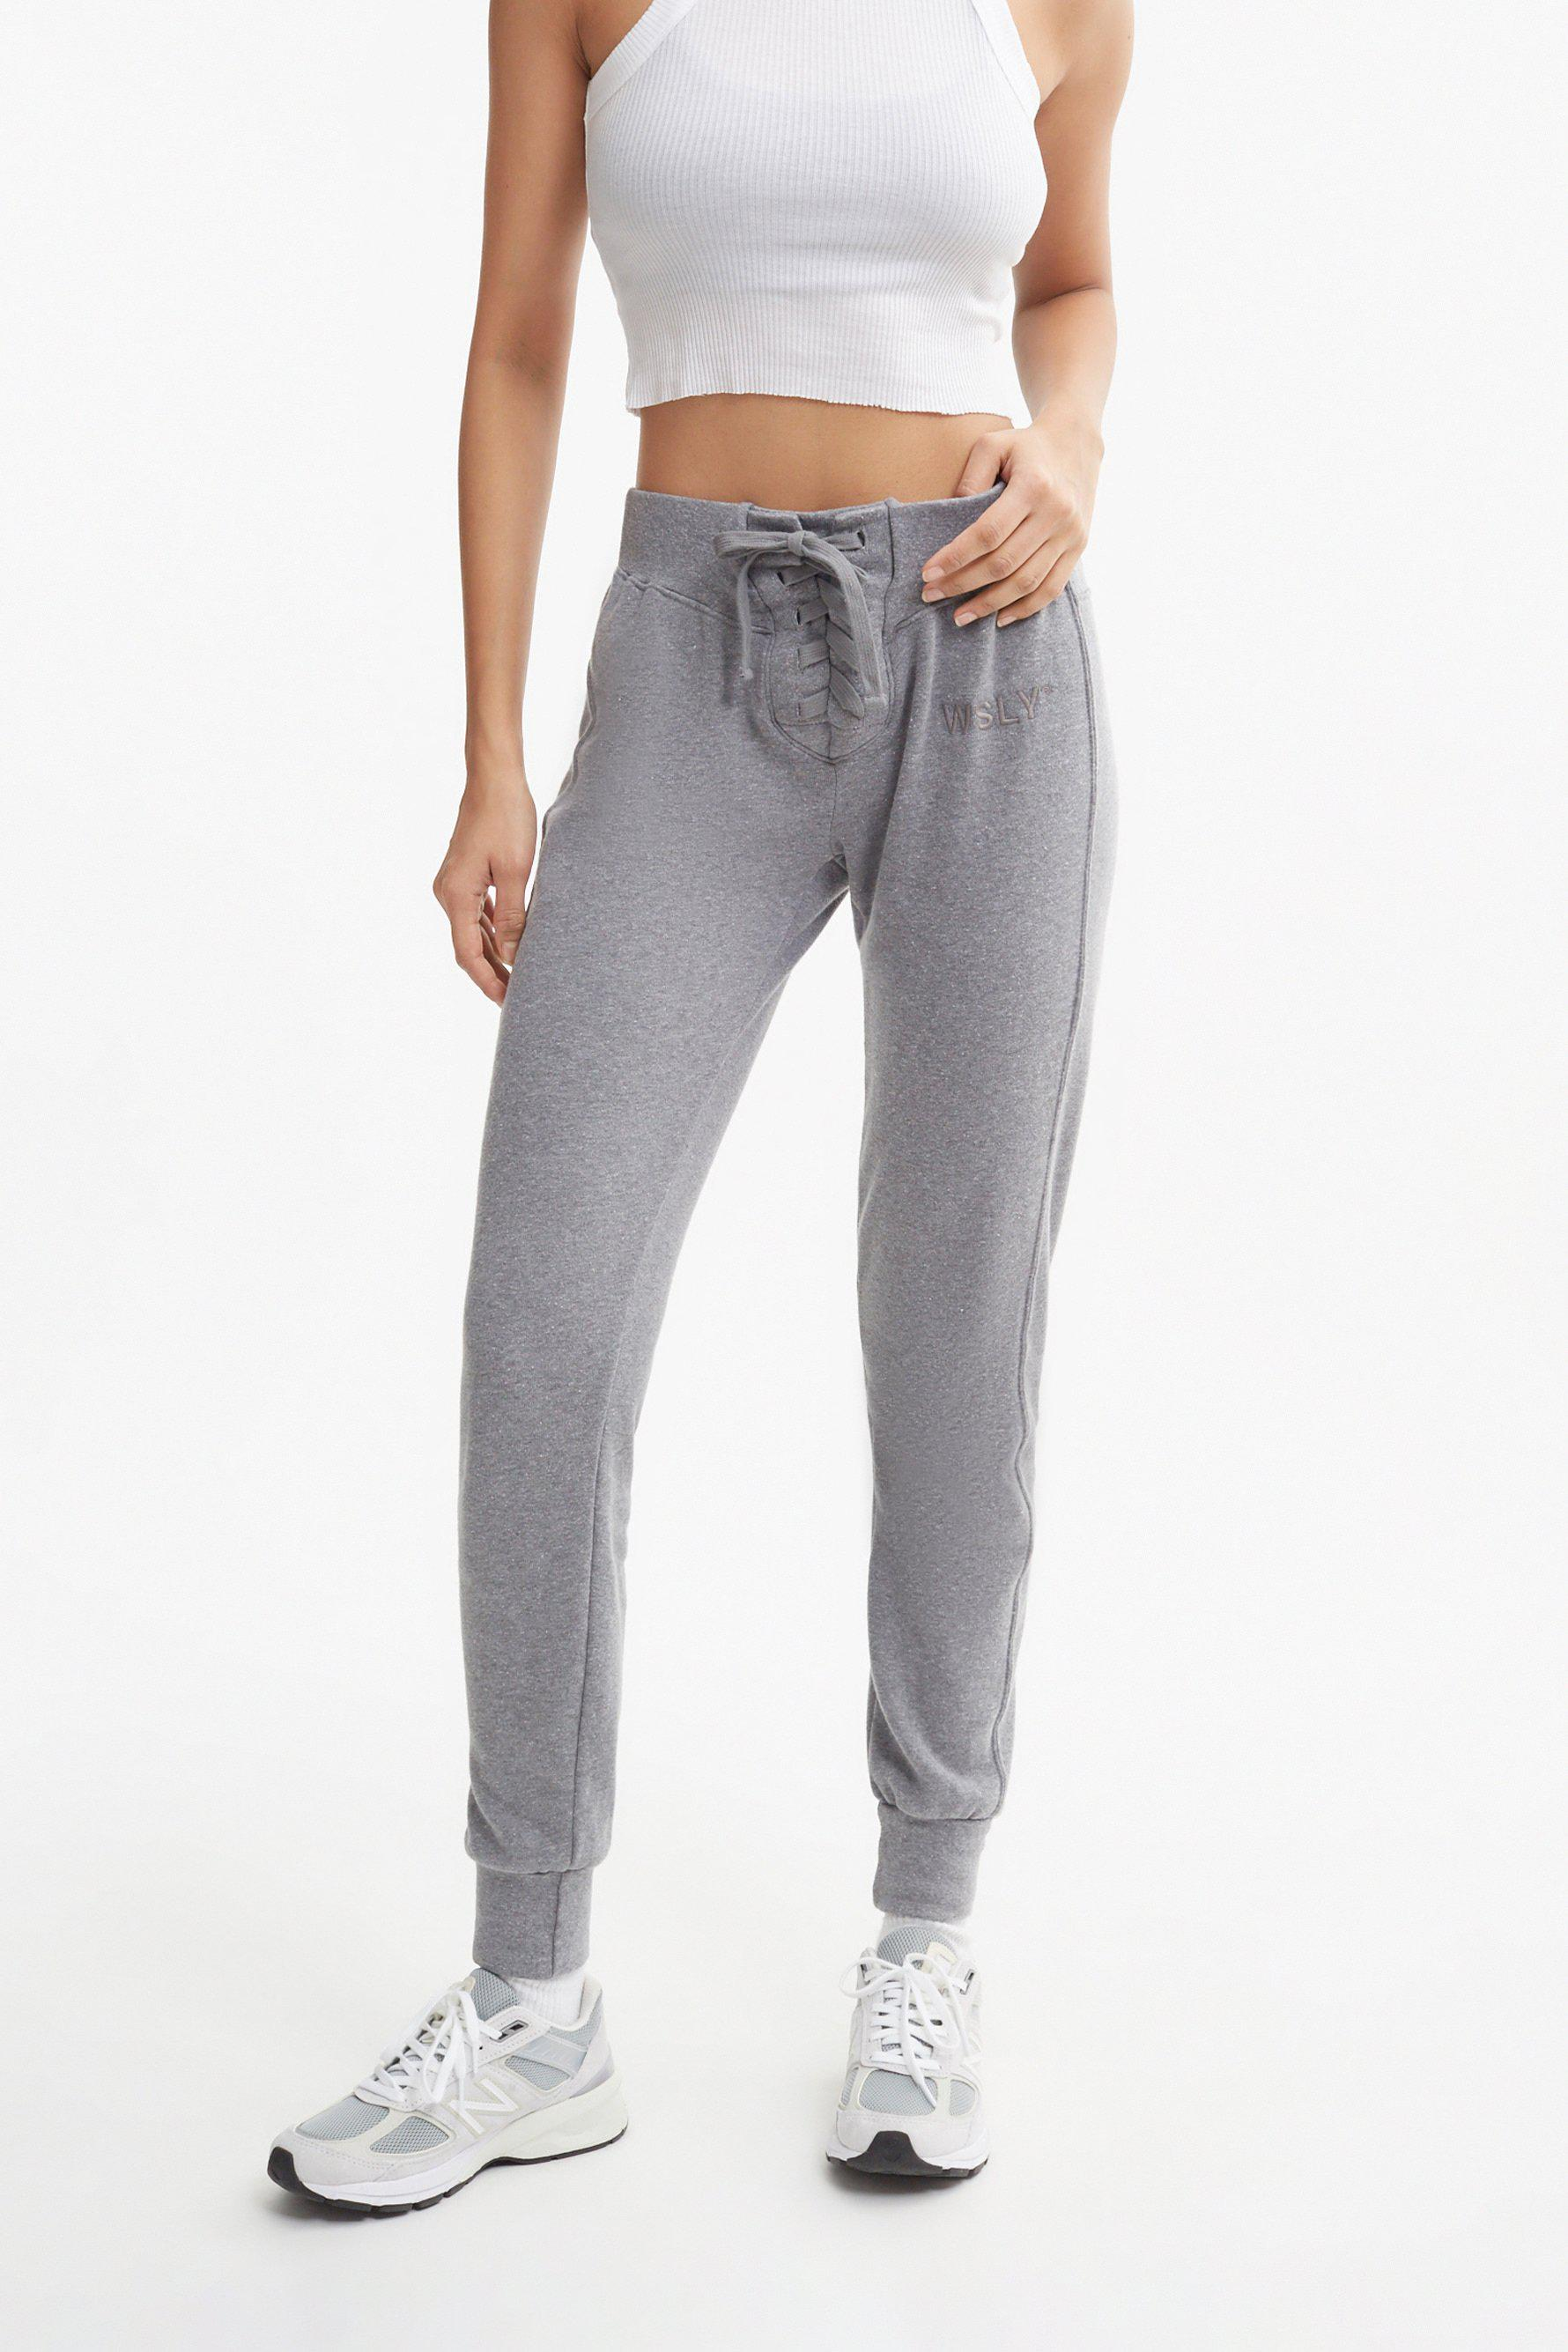 The Ecosoft Tie Up Jogger